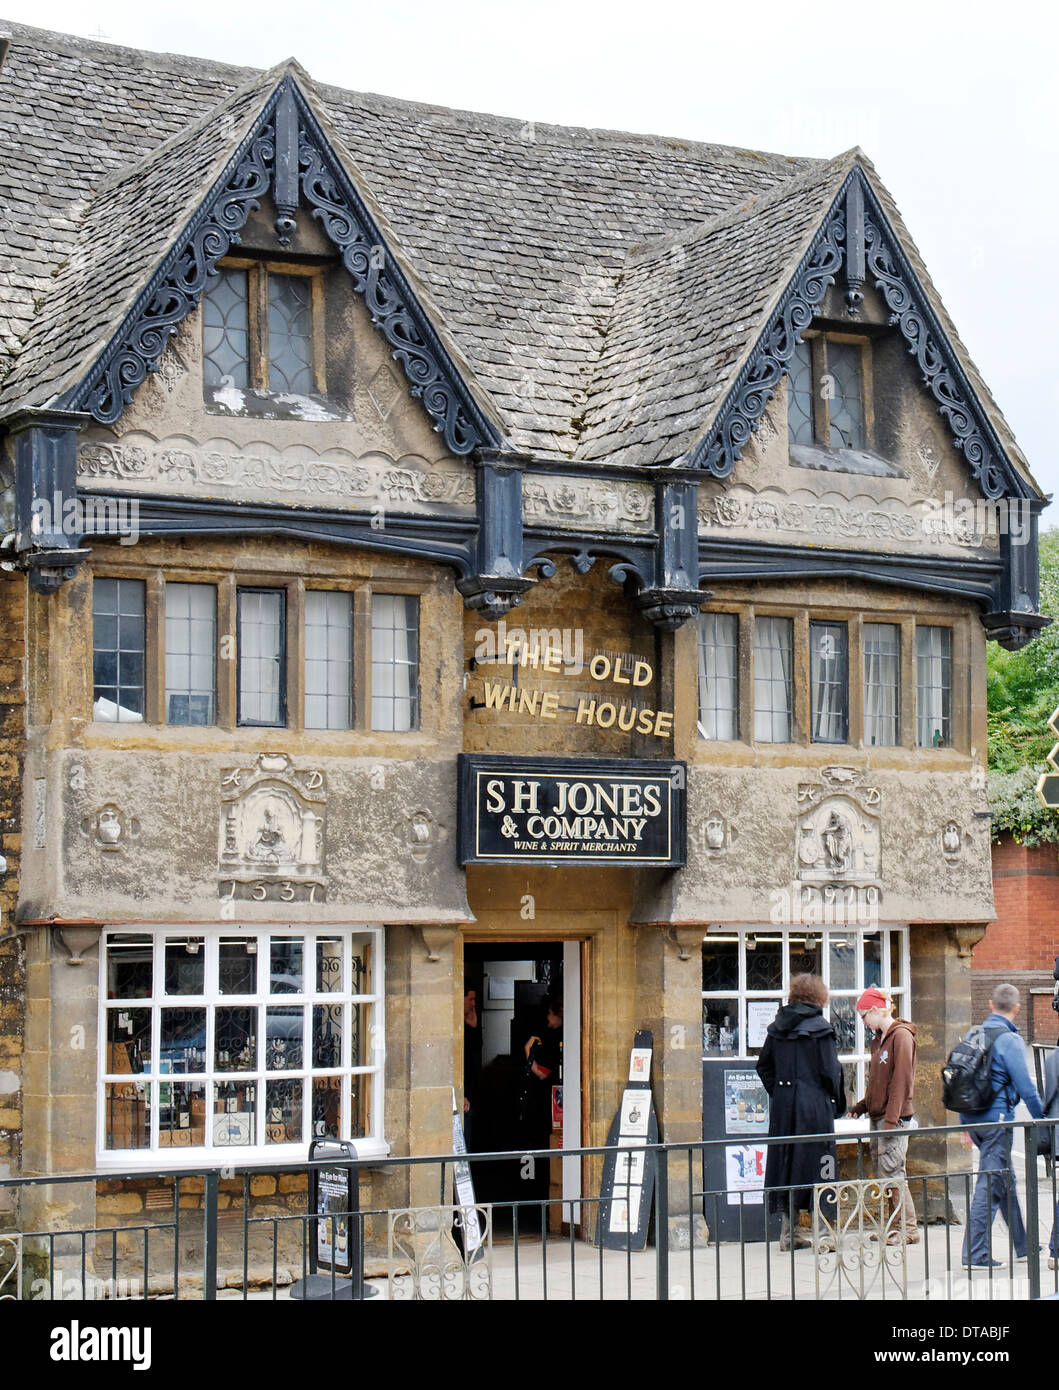 'Old WIne House' in Banbury, Oxfordshire, England - Stock Image